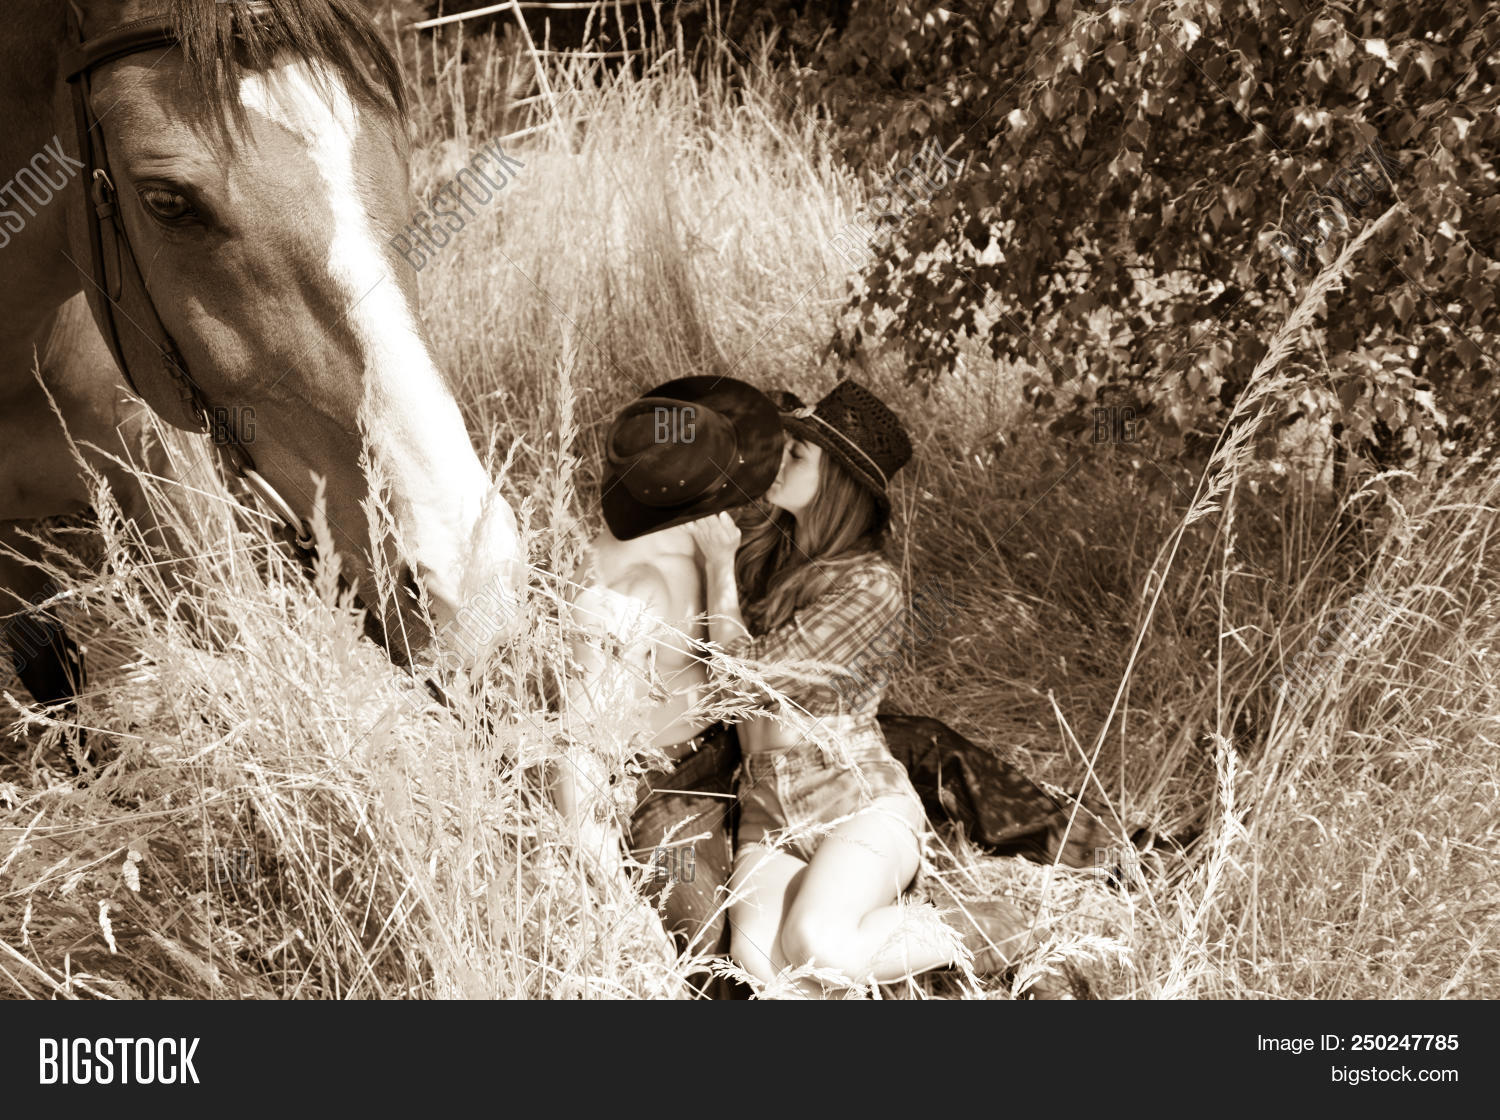 Cowgirl Cowboy Country Image Photo Free Trial Bigstock